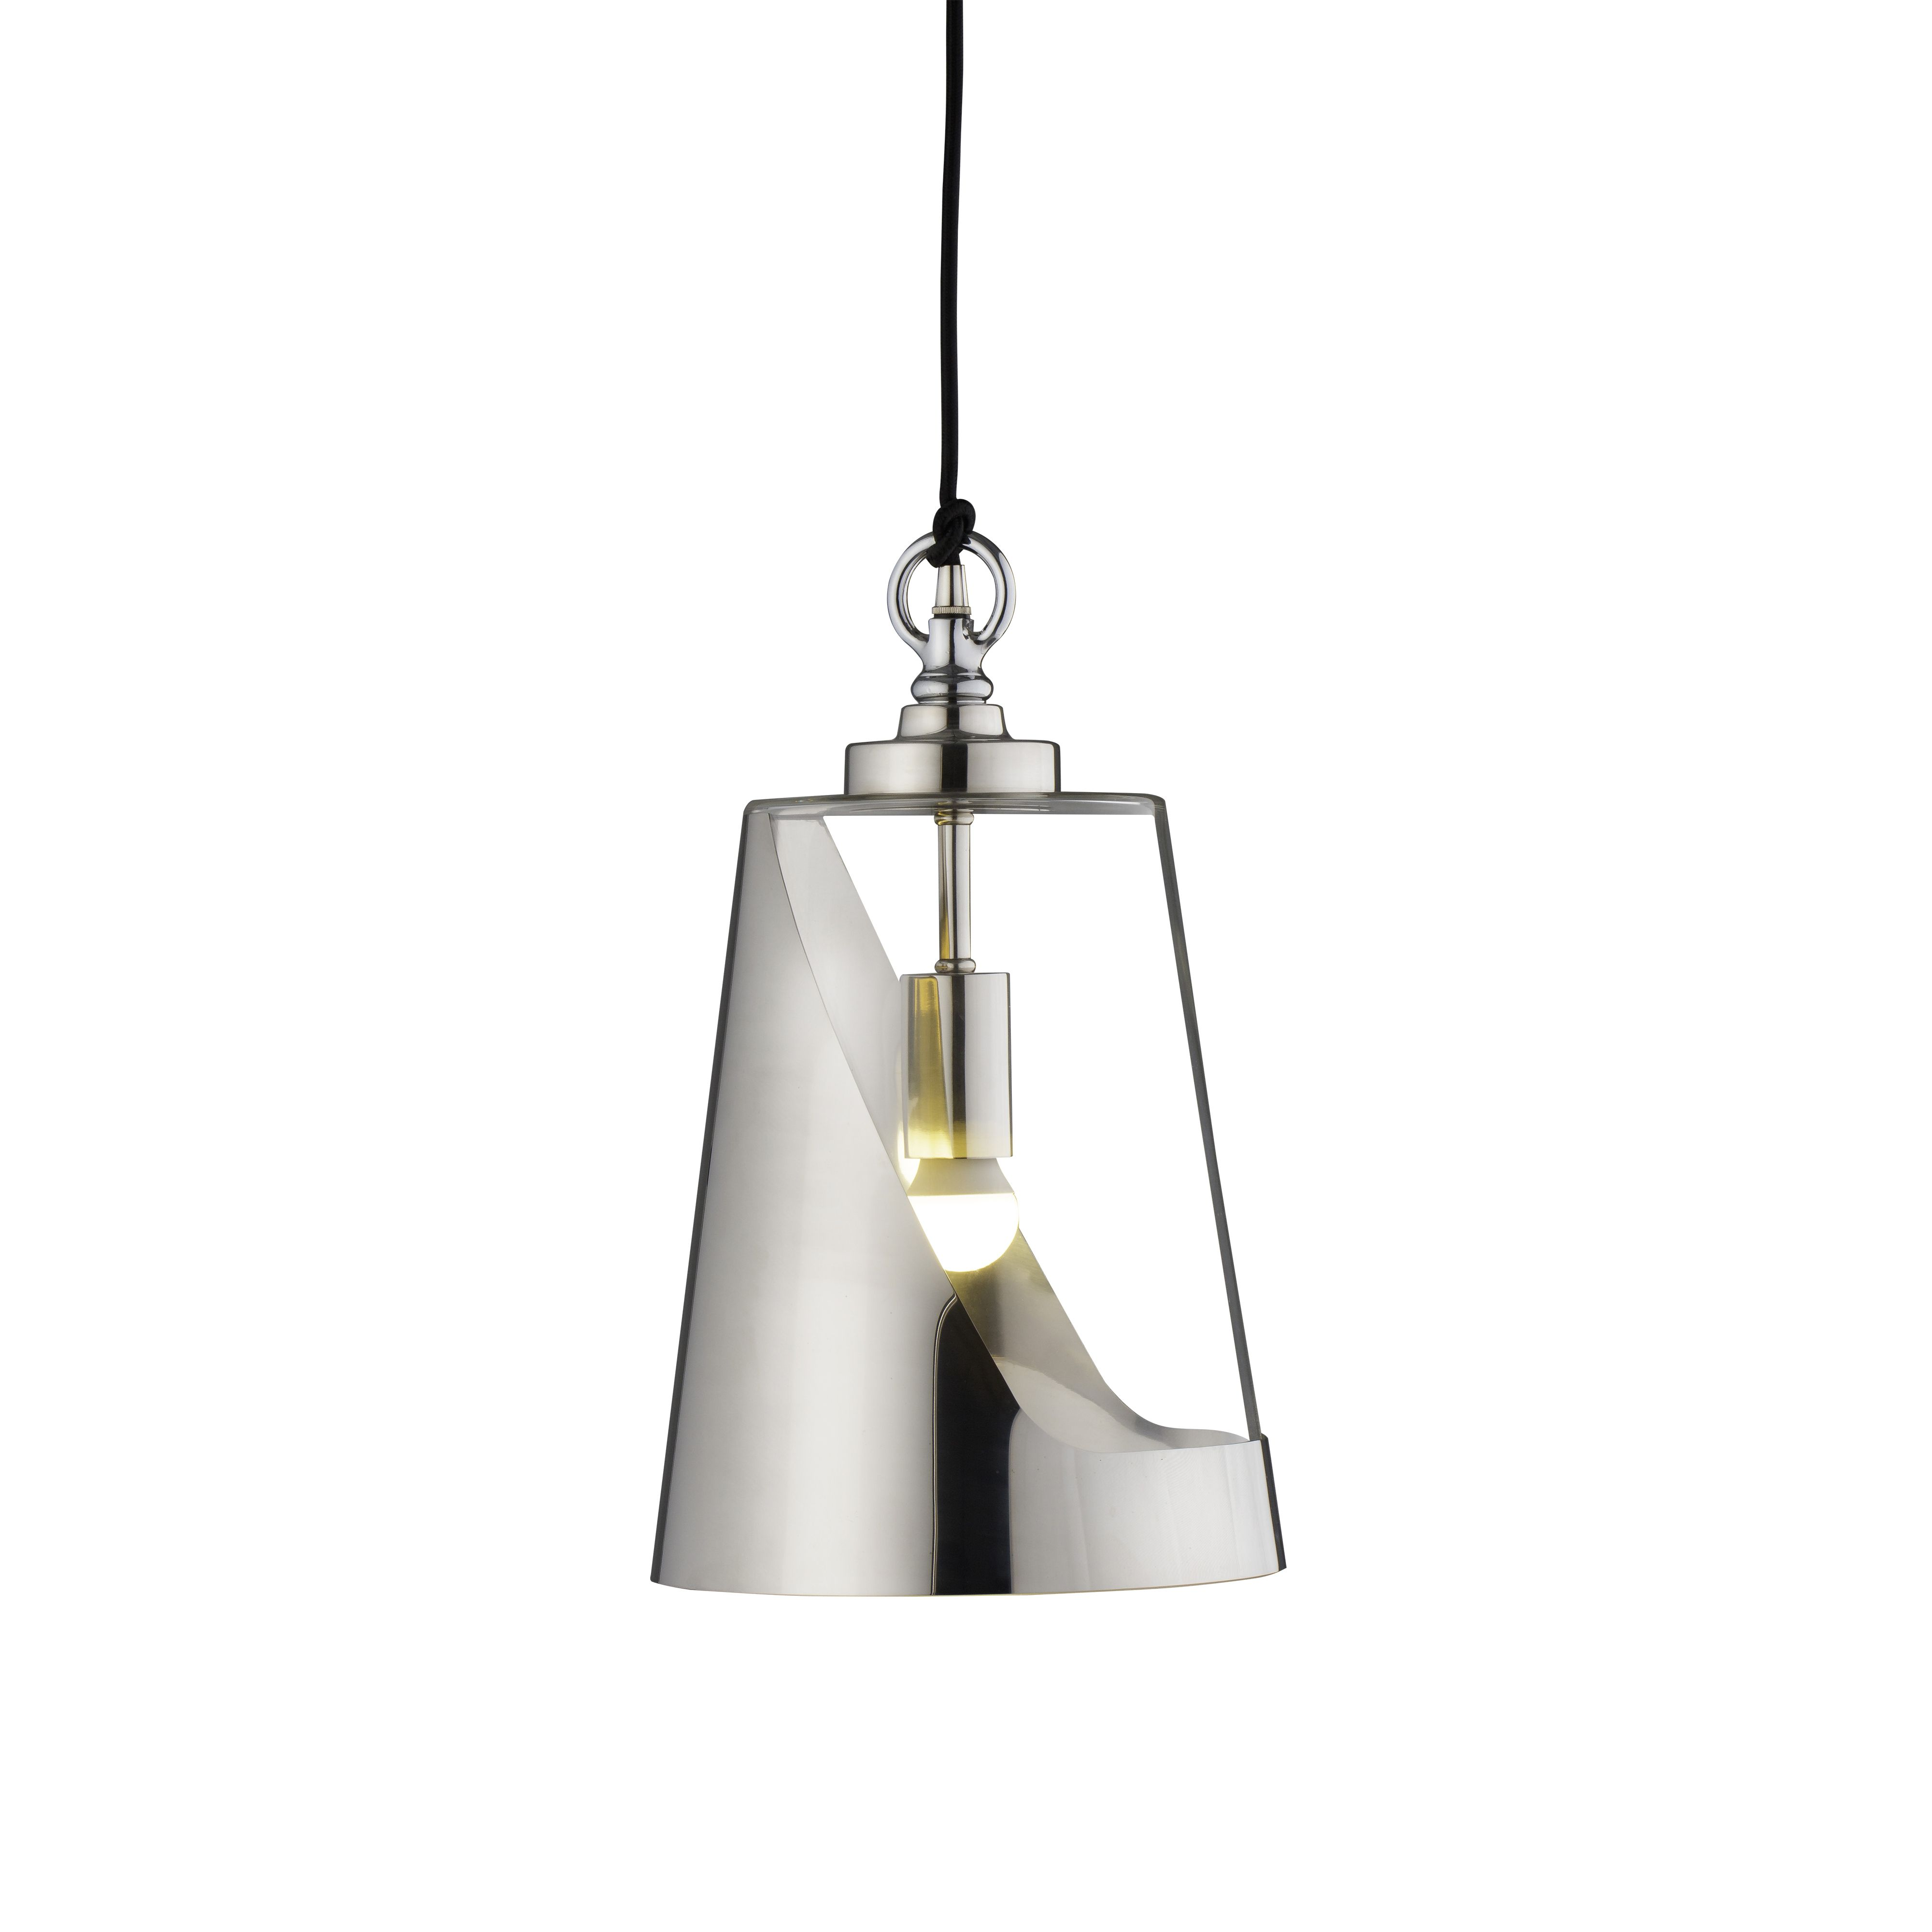 Bessie Pendant Lamp Stainless Steel In 2020 Dome Pendant Lighting Pendant Light Pendant Lamp